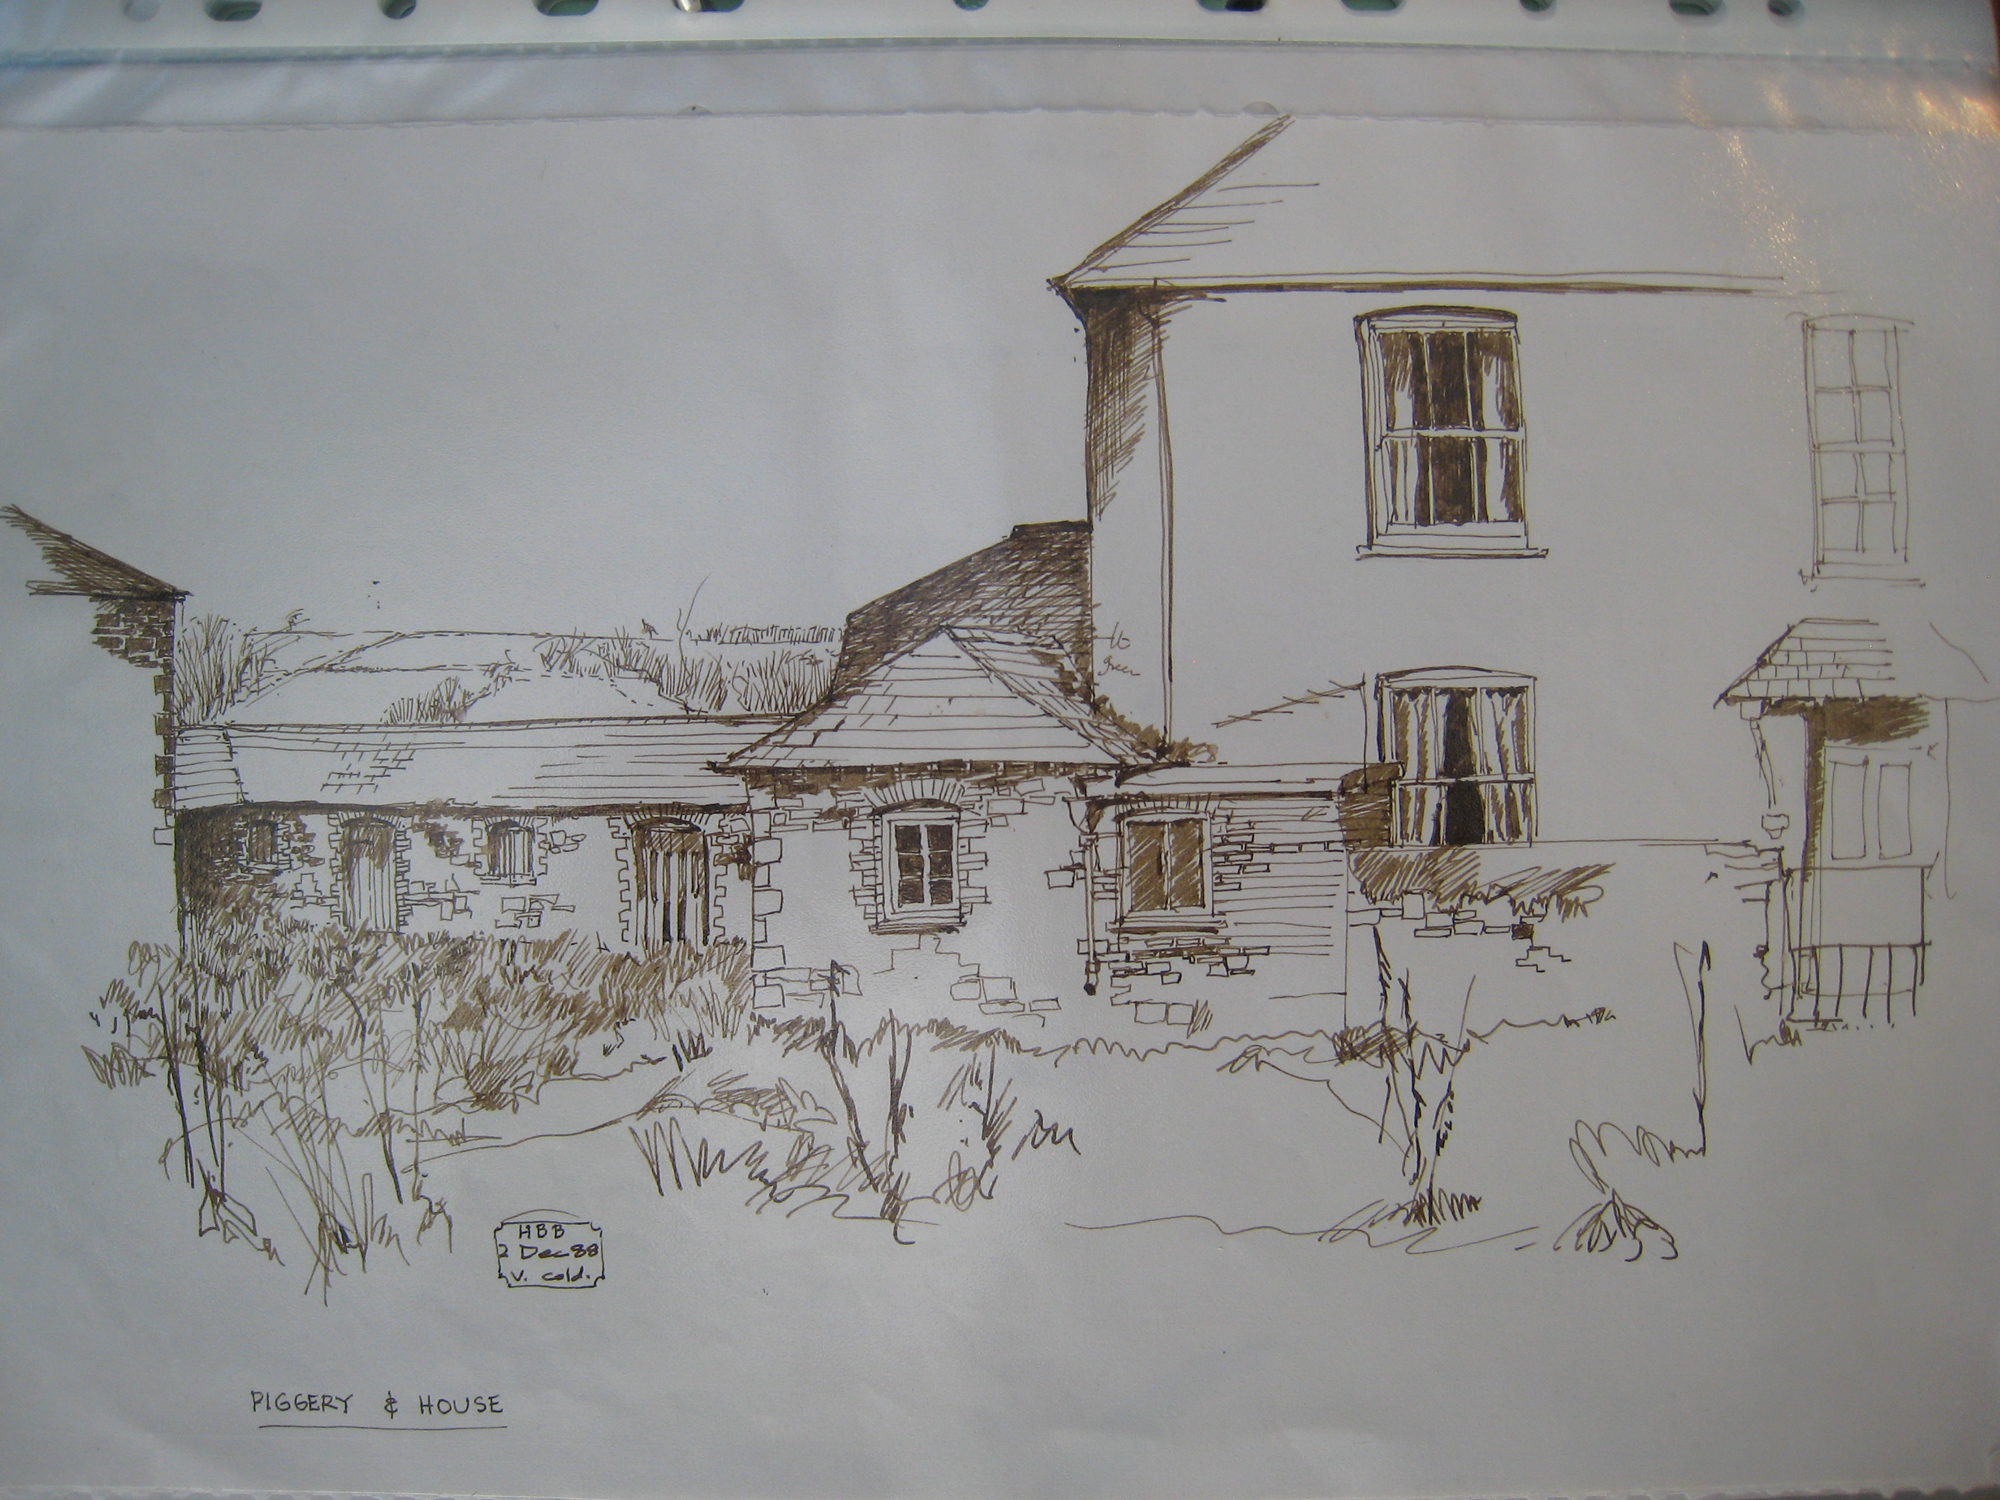 Homeliving piggery and house, drawing from front